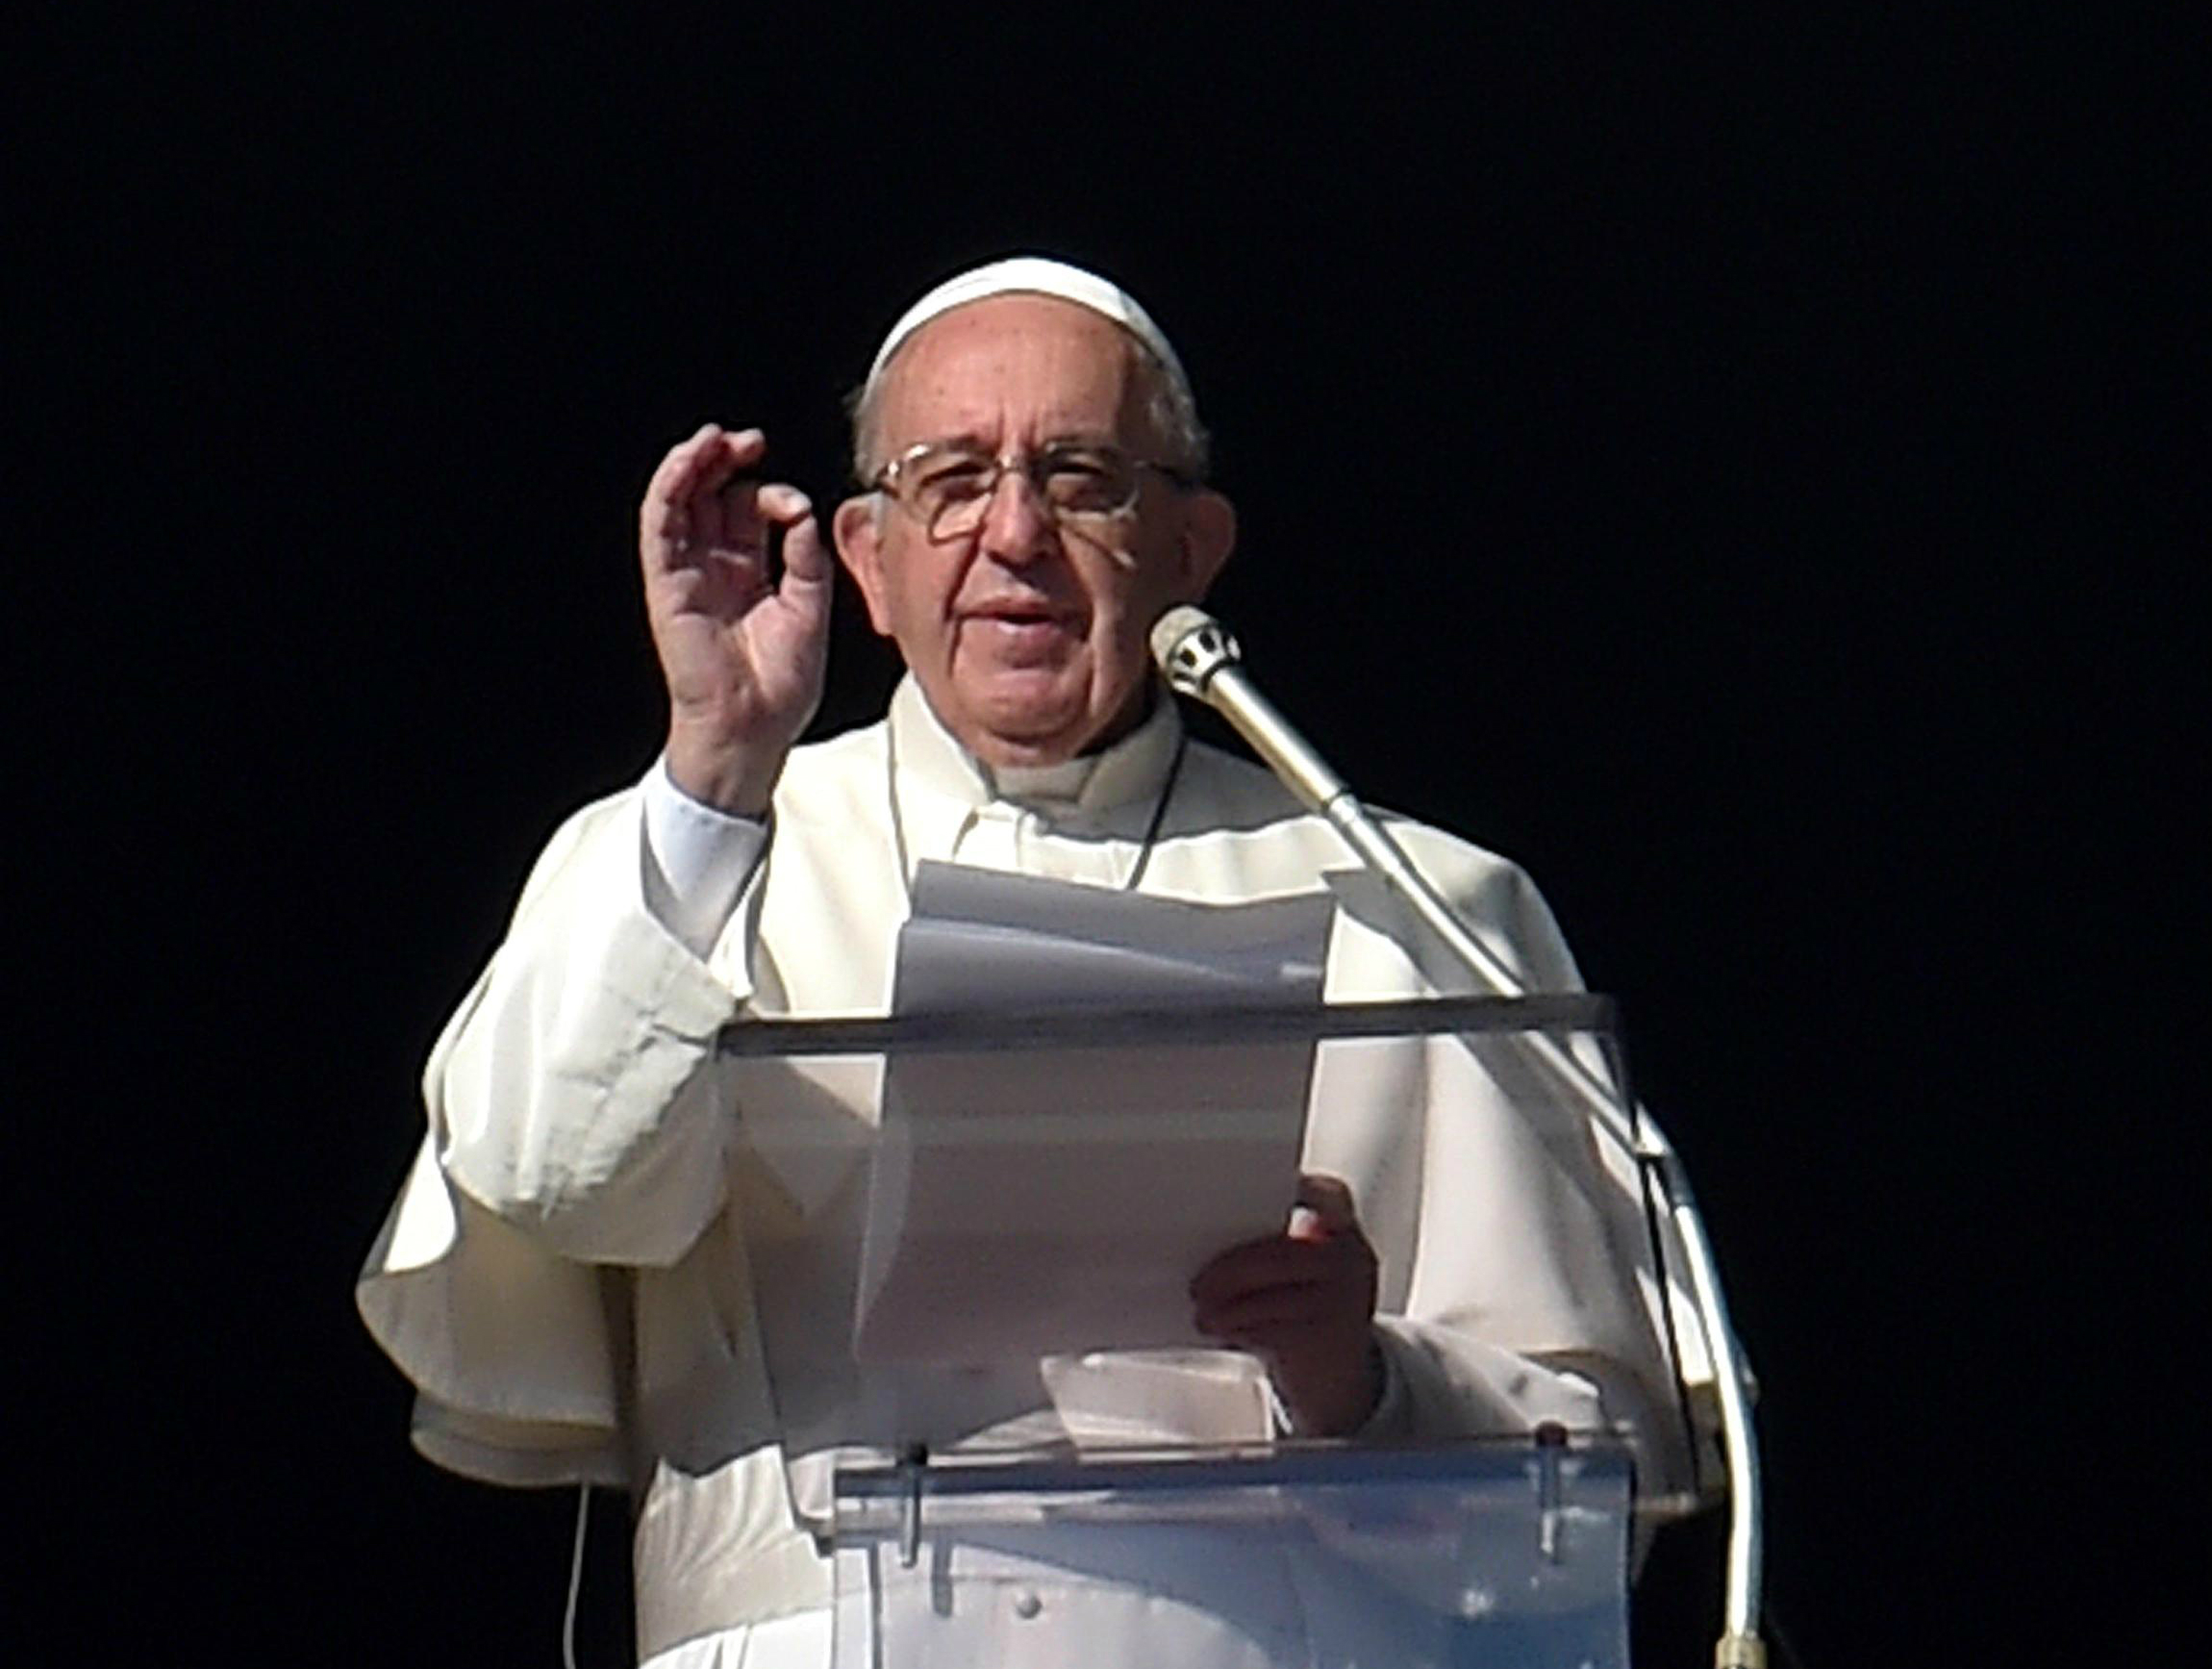 Pope Francis at the Angelus of Sunday 20th of December 2015